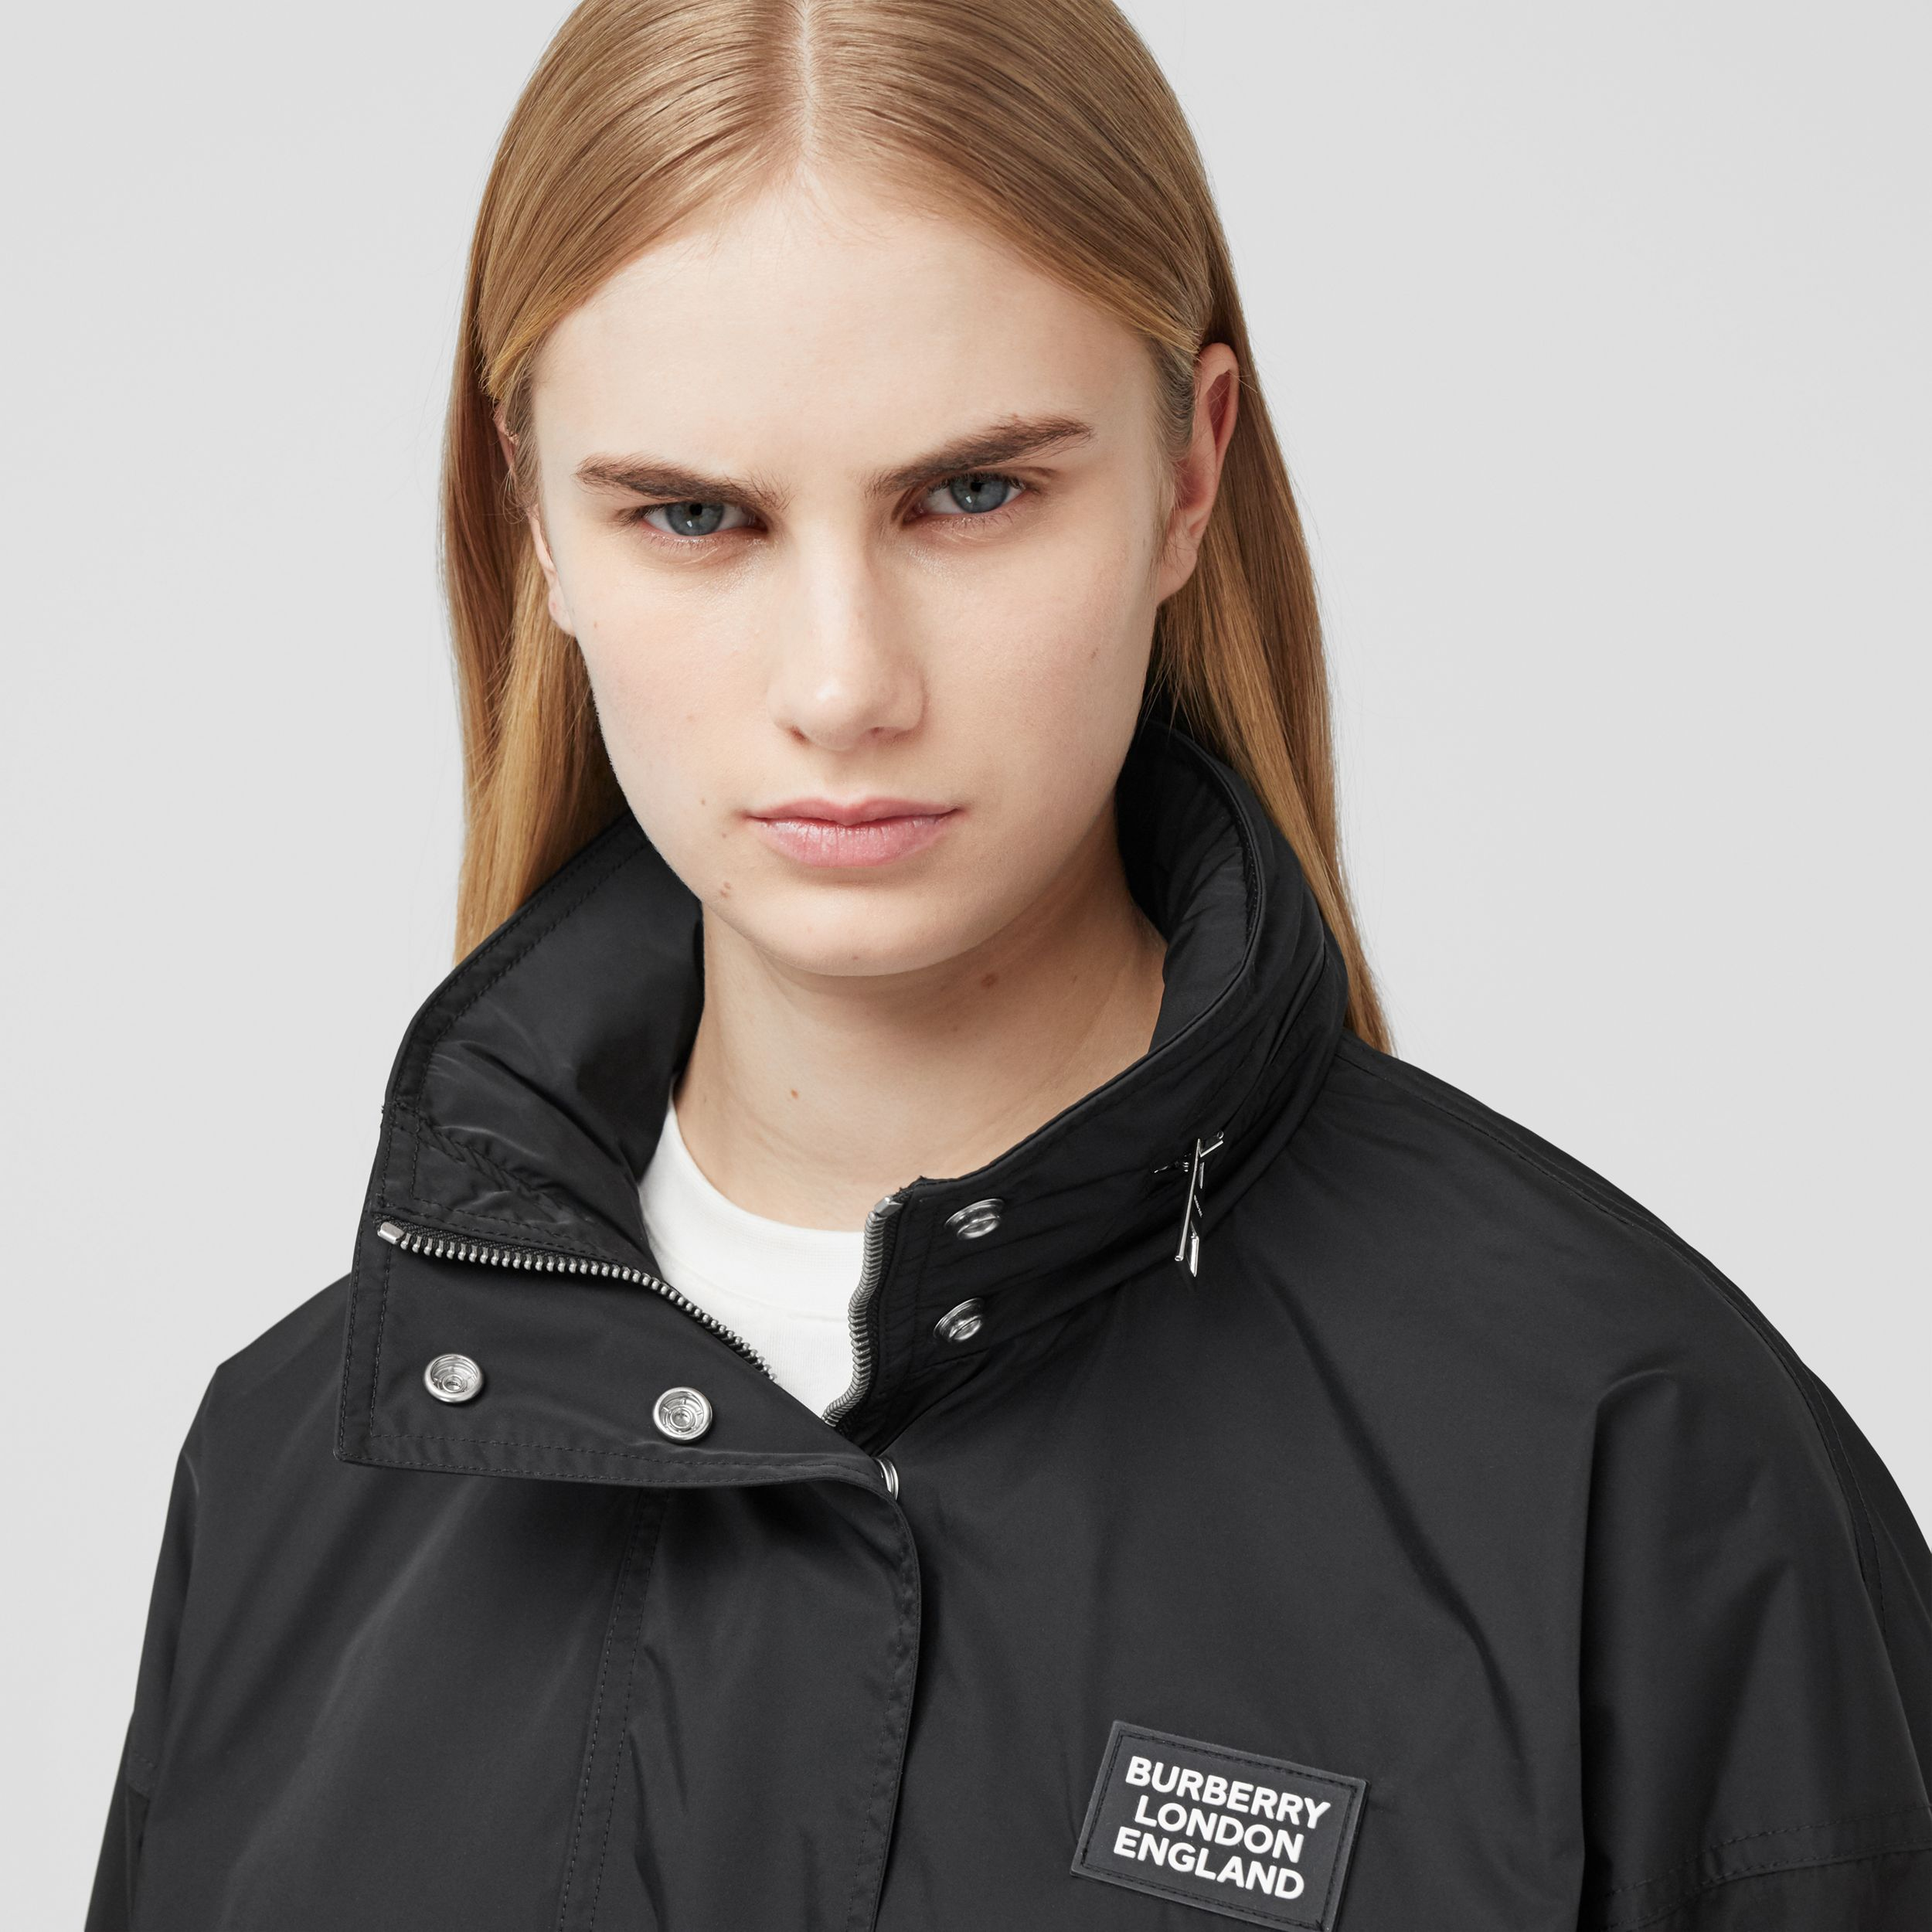 Packaway Hood Bio-based Nylon Jacket in Black - Women | Burberry - 2